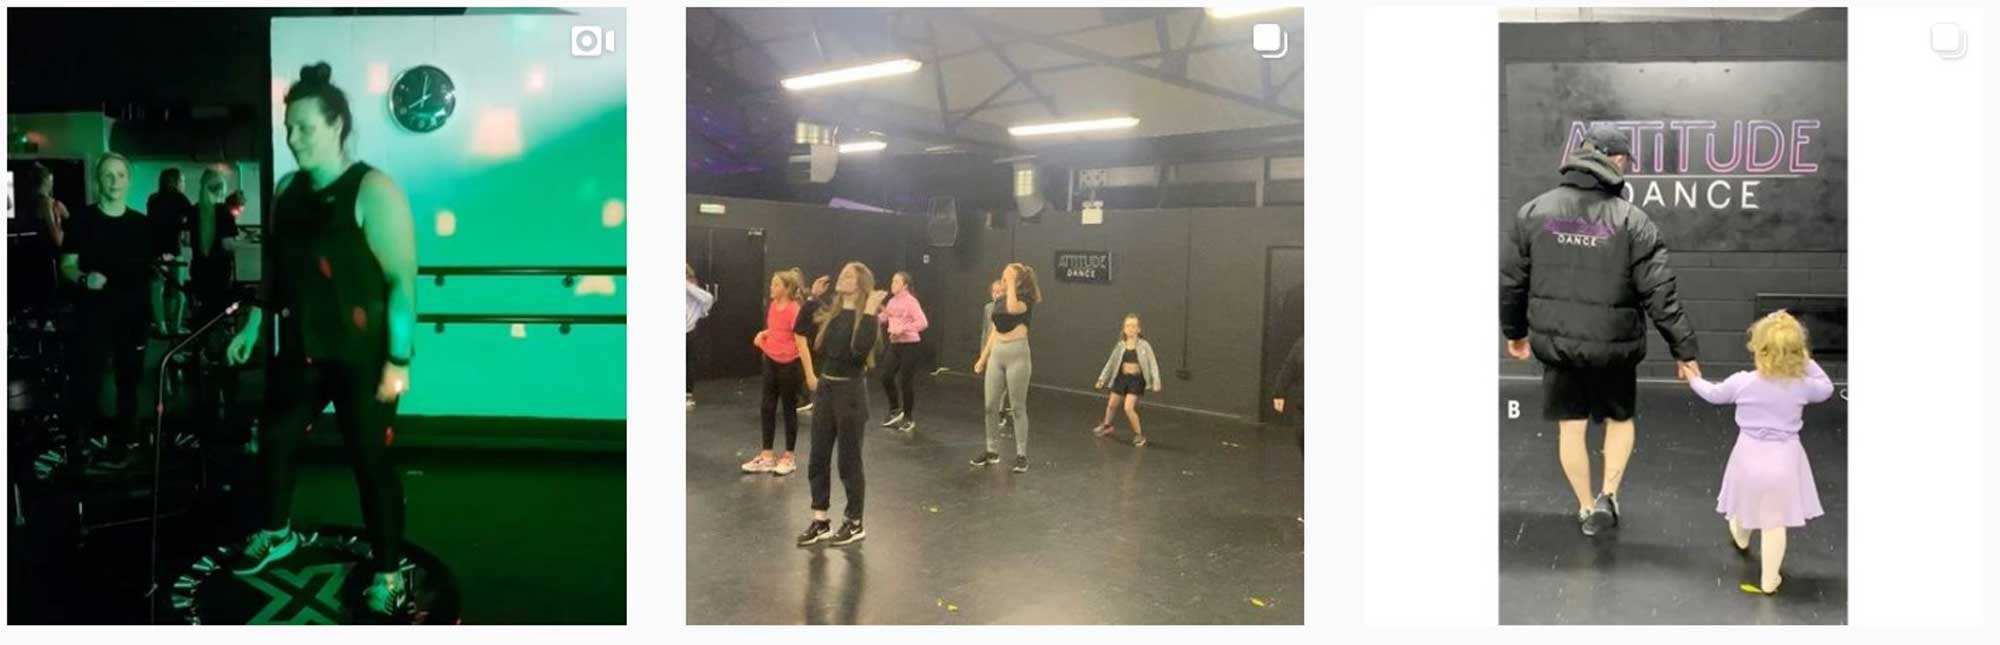 Attitude Dance Bootle Instagram News Feed